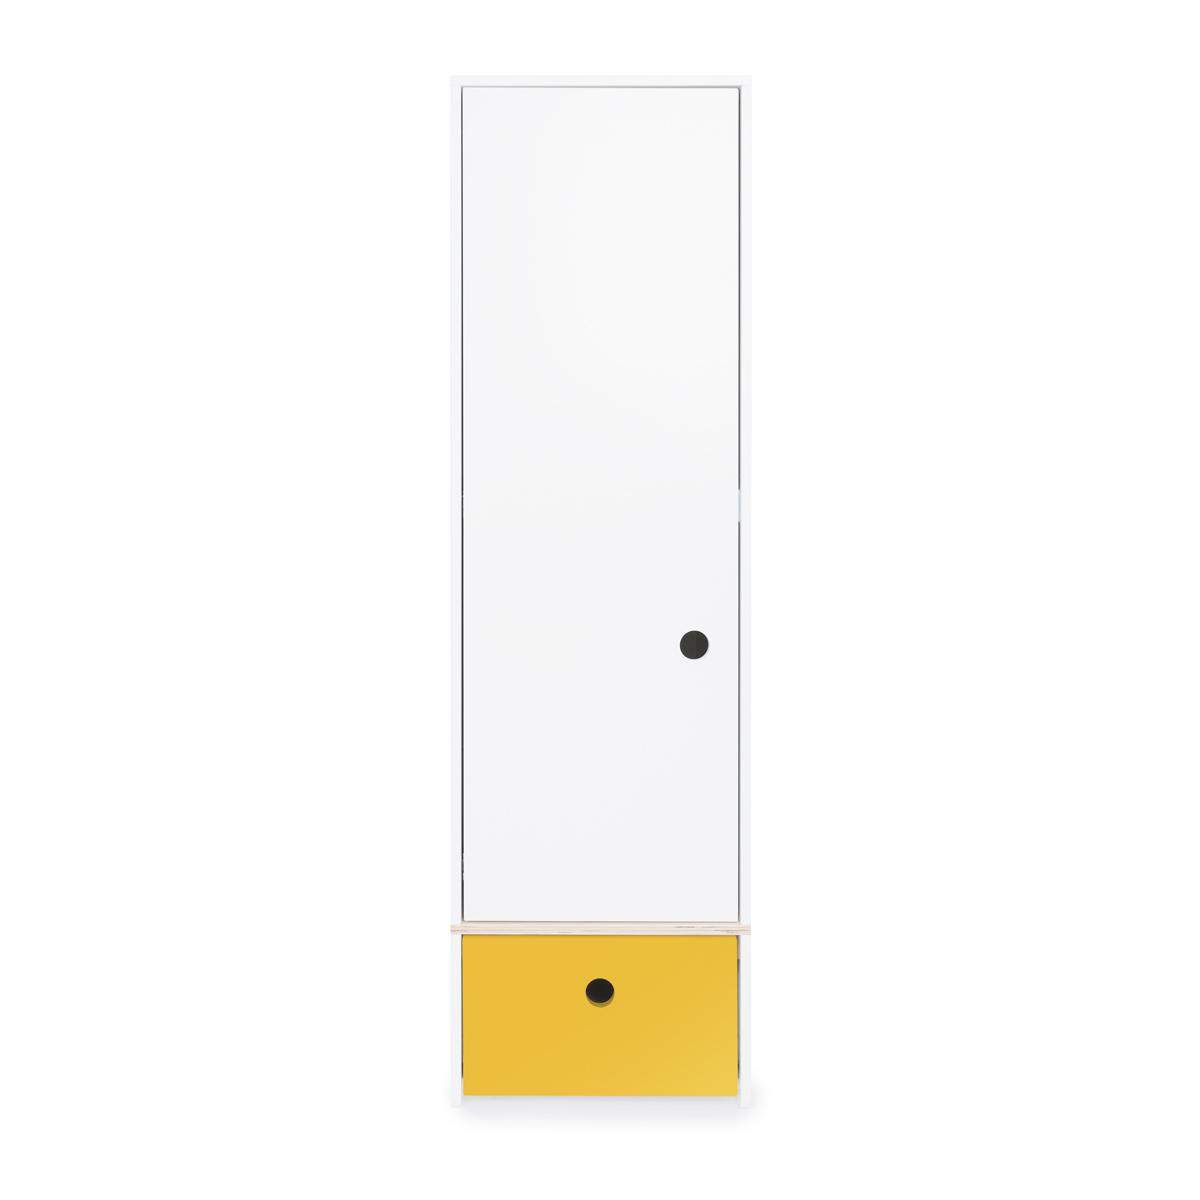 Armario 1 puerta COLORFLEX Abitare Kids cajón frontal nectar yellow